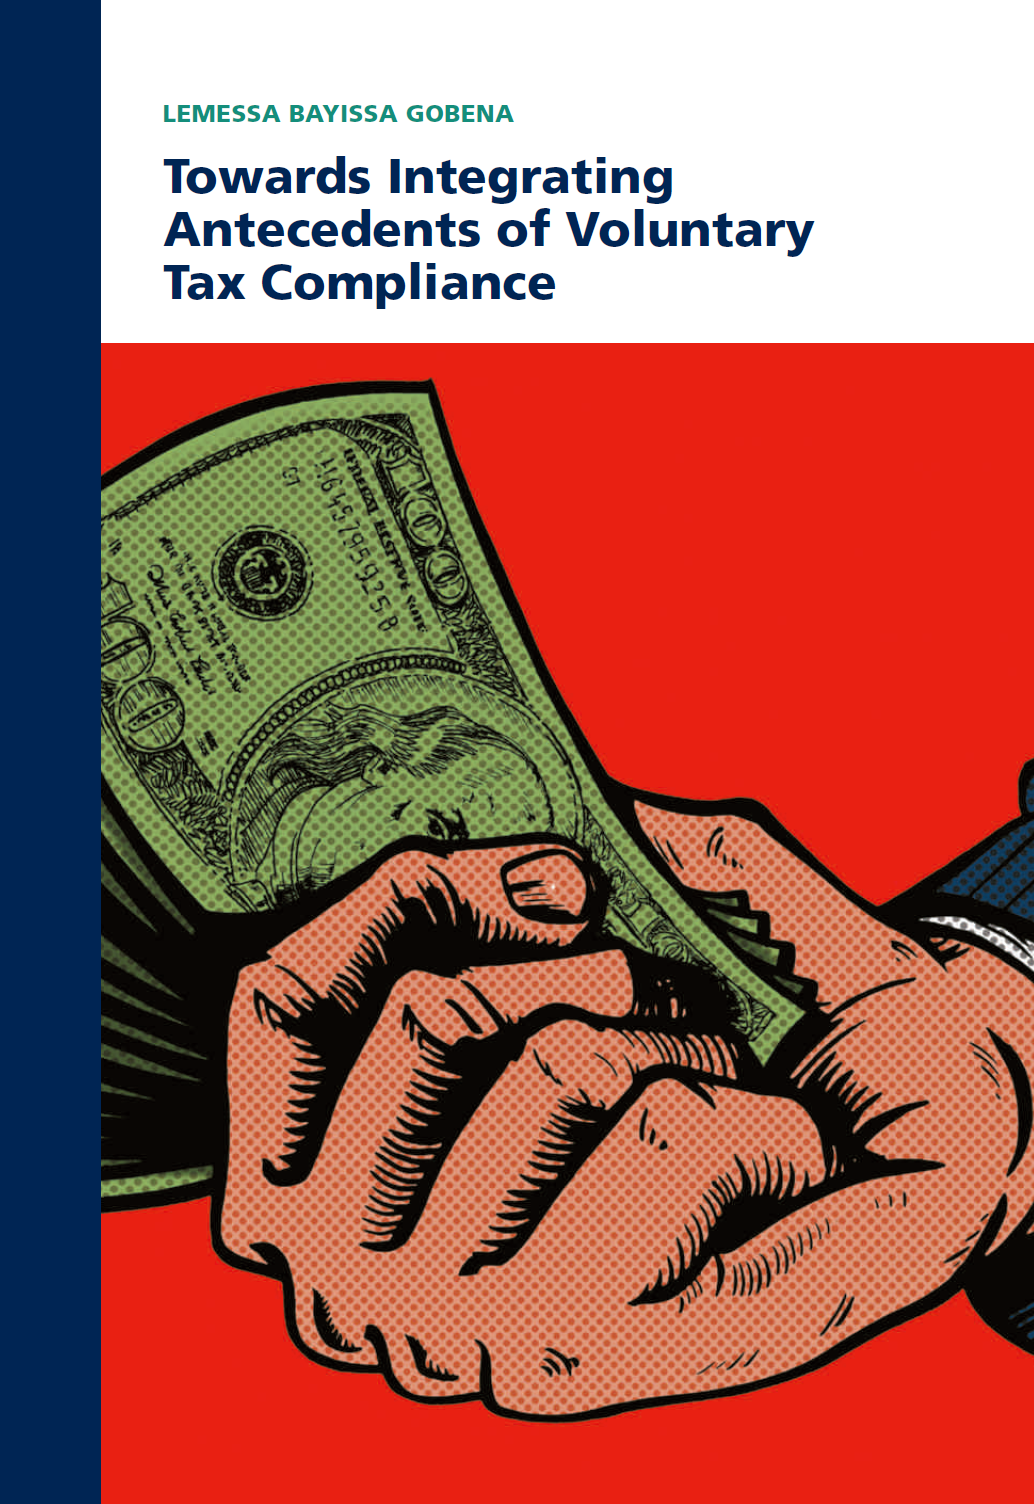 Towards Integrating Antecedents of Voluntary Tax Compliance